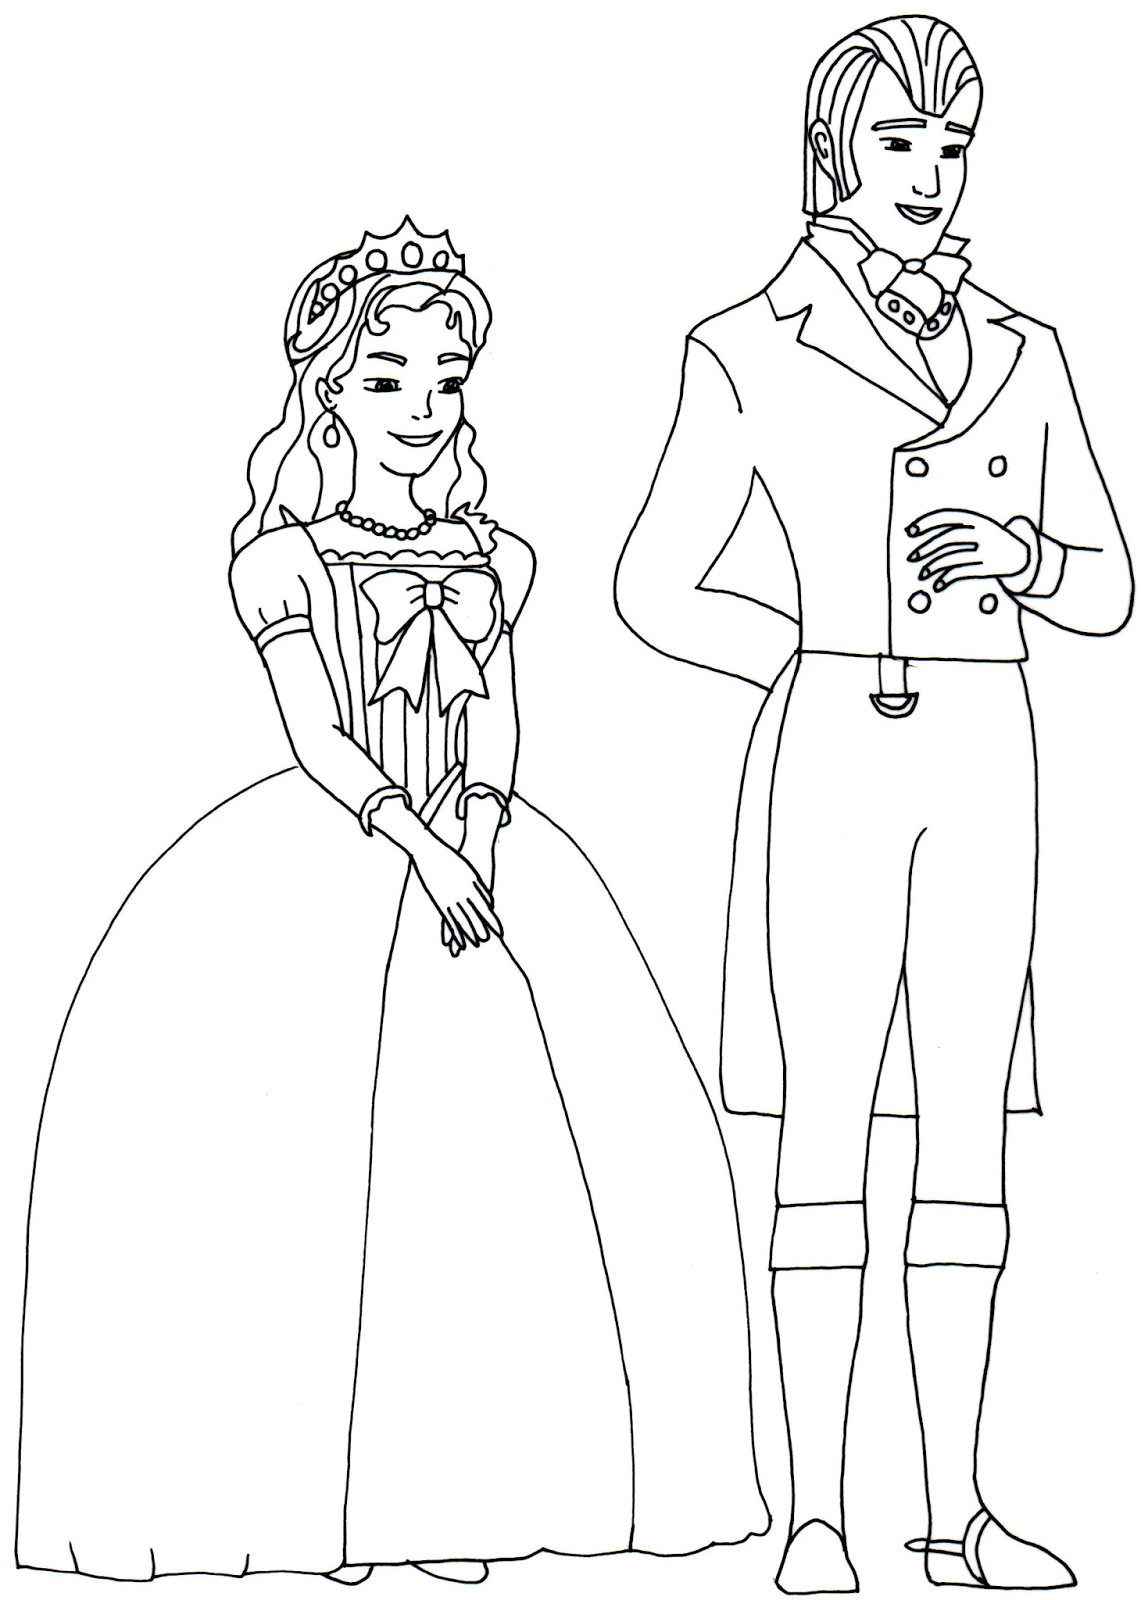 Princess sophia printable coloring pages - Princess Sofia Coloring Page Google S Gning